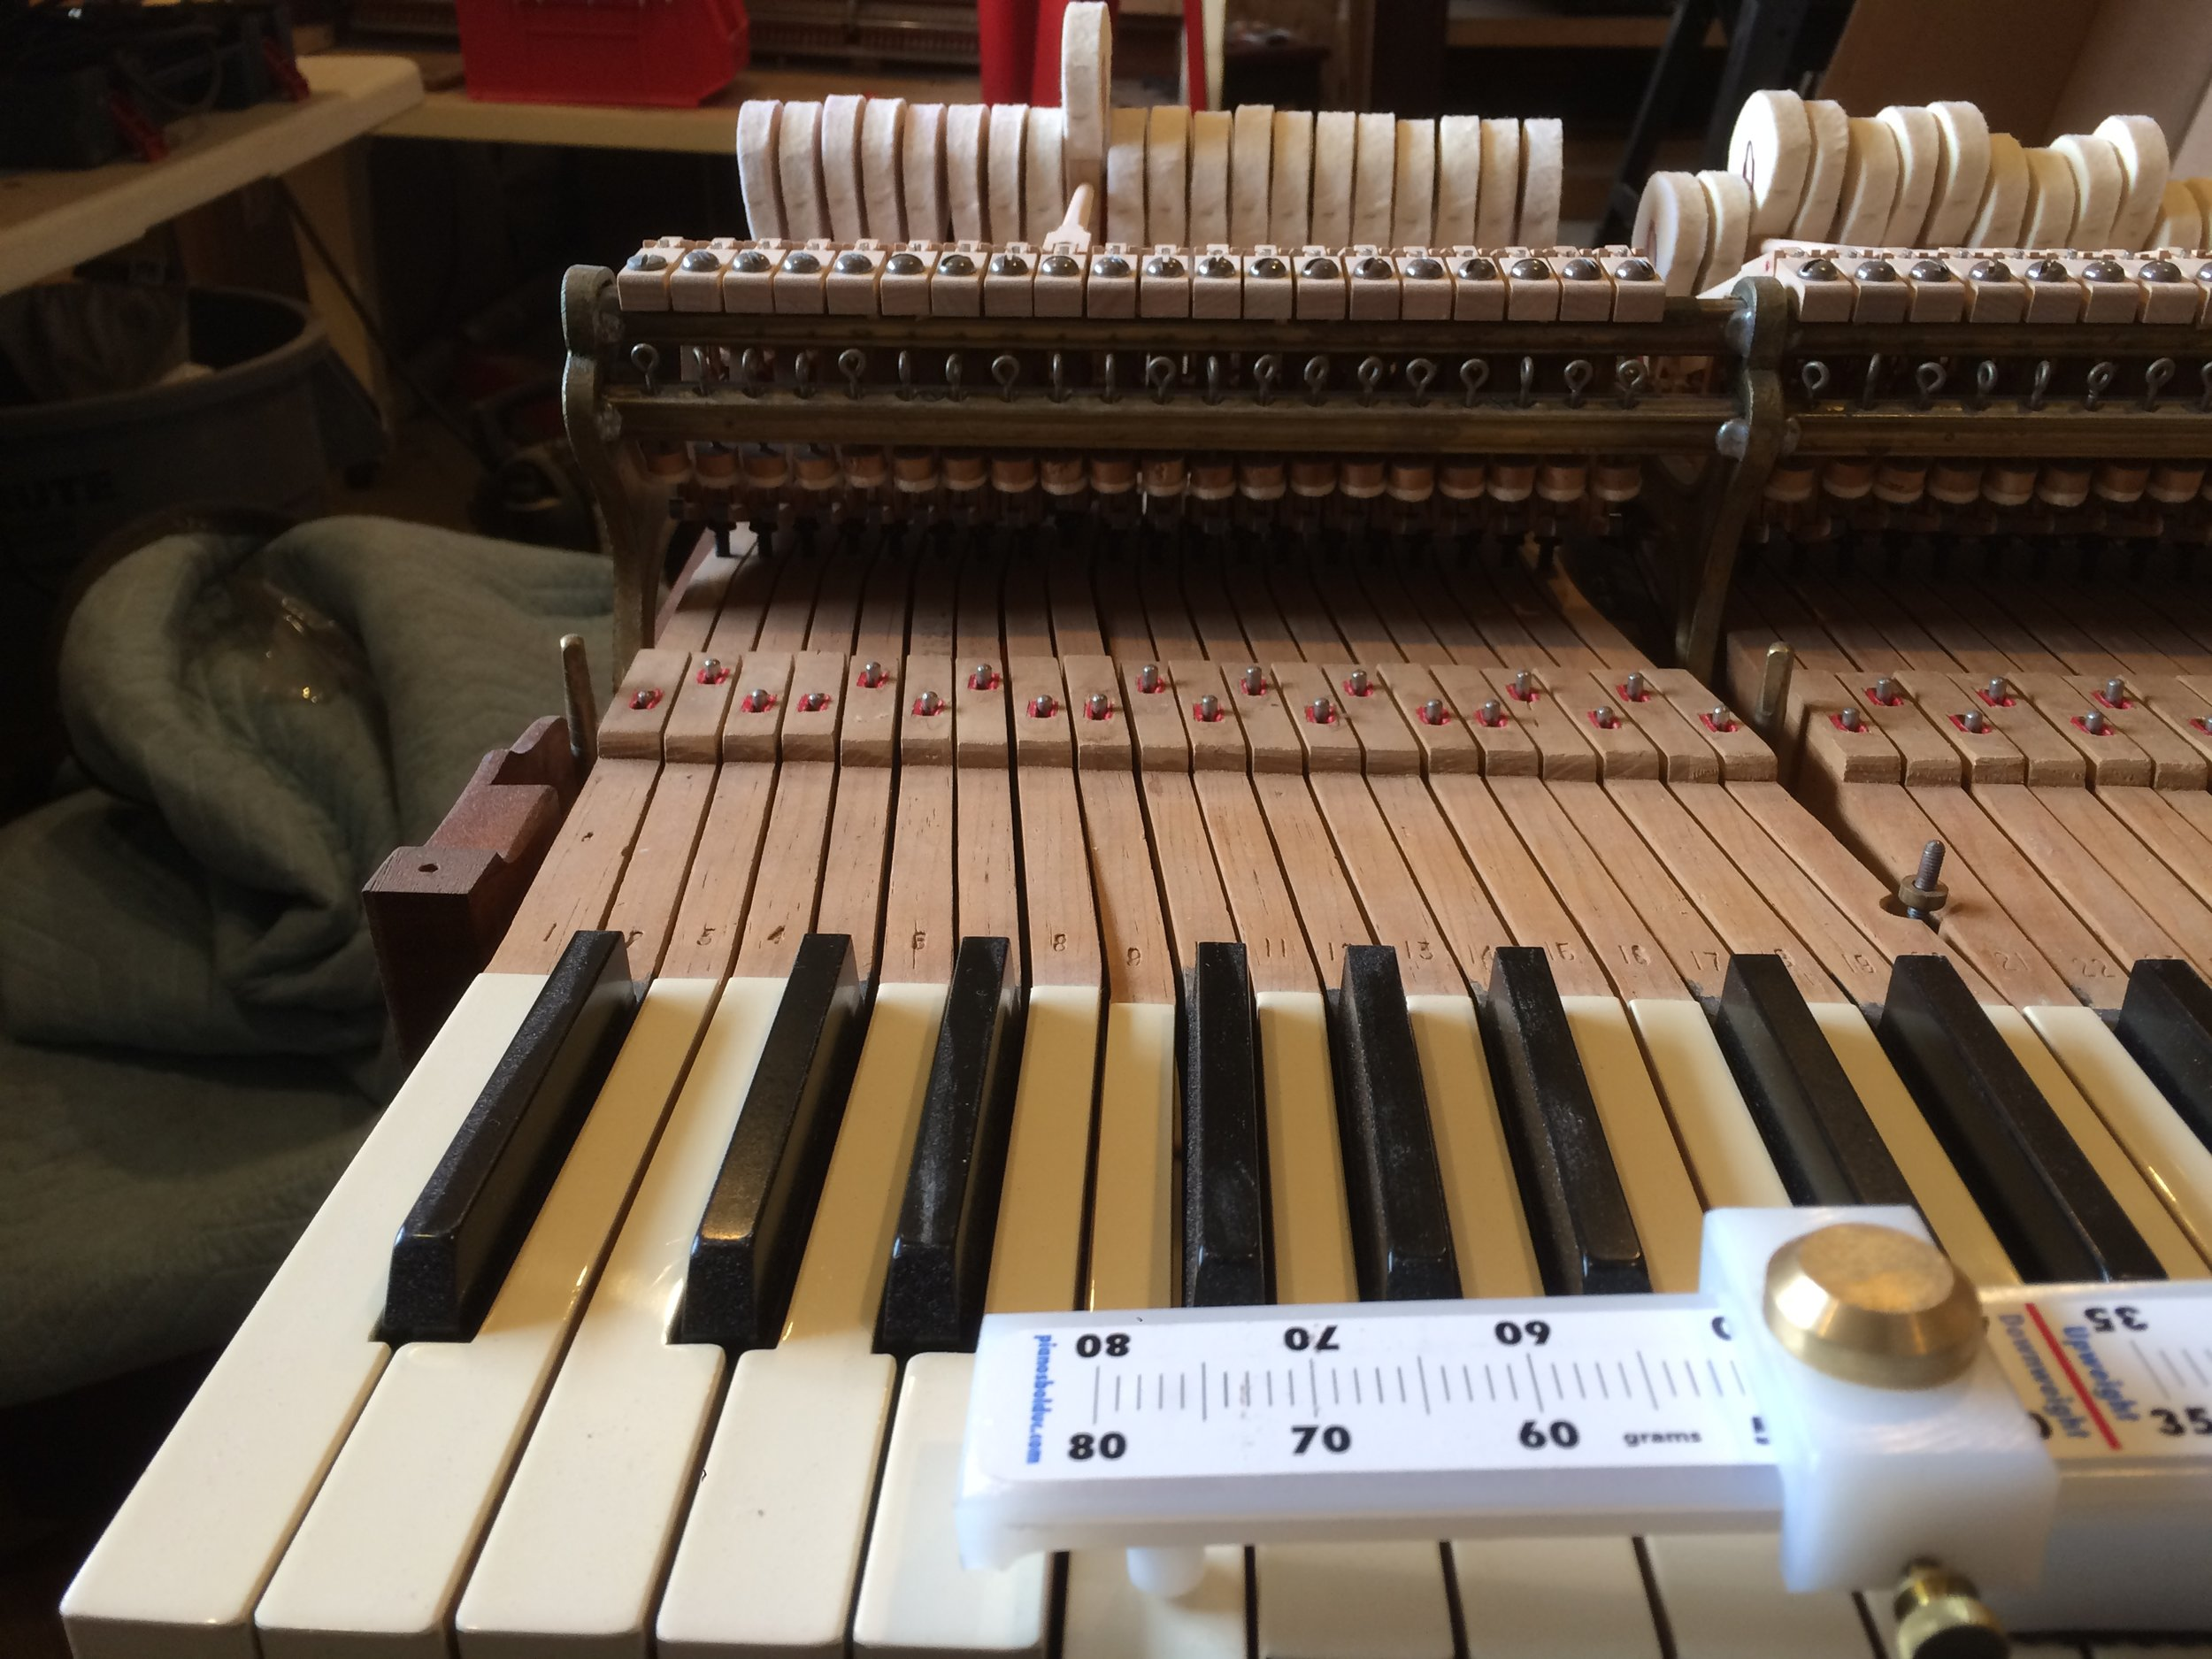 Calibrating the touchweight for a Steinway grand piano.